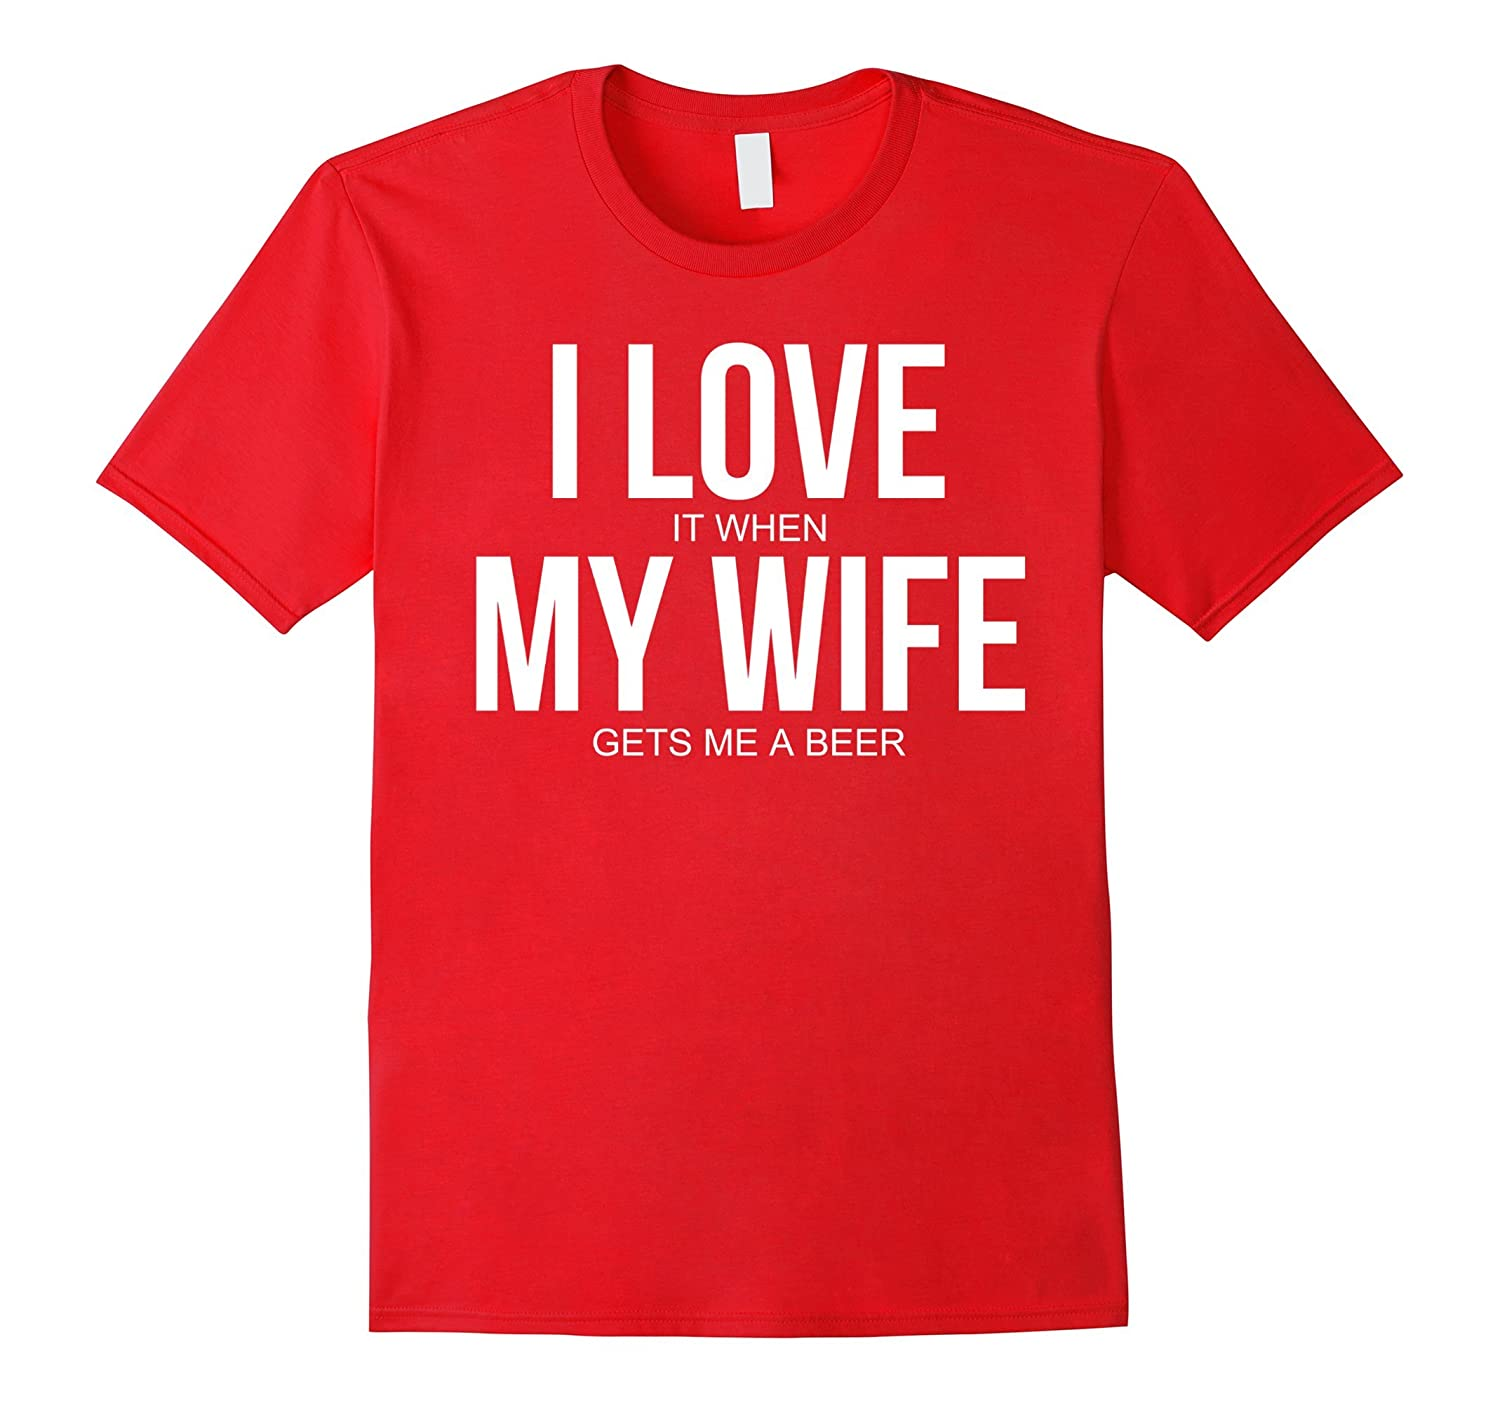 a623332ce Men's Funny I Love (it when) My Wife (gets me a beer) T-shirt-CL – Colamaga